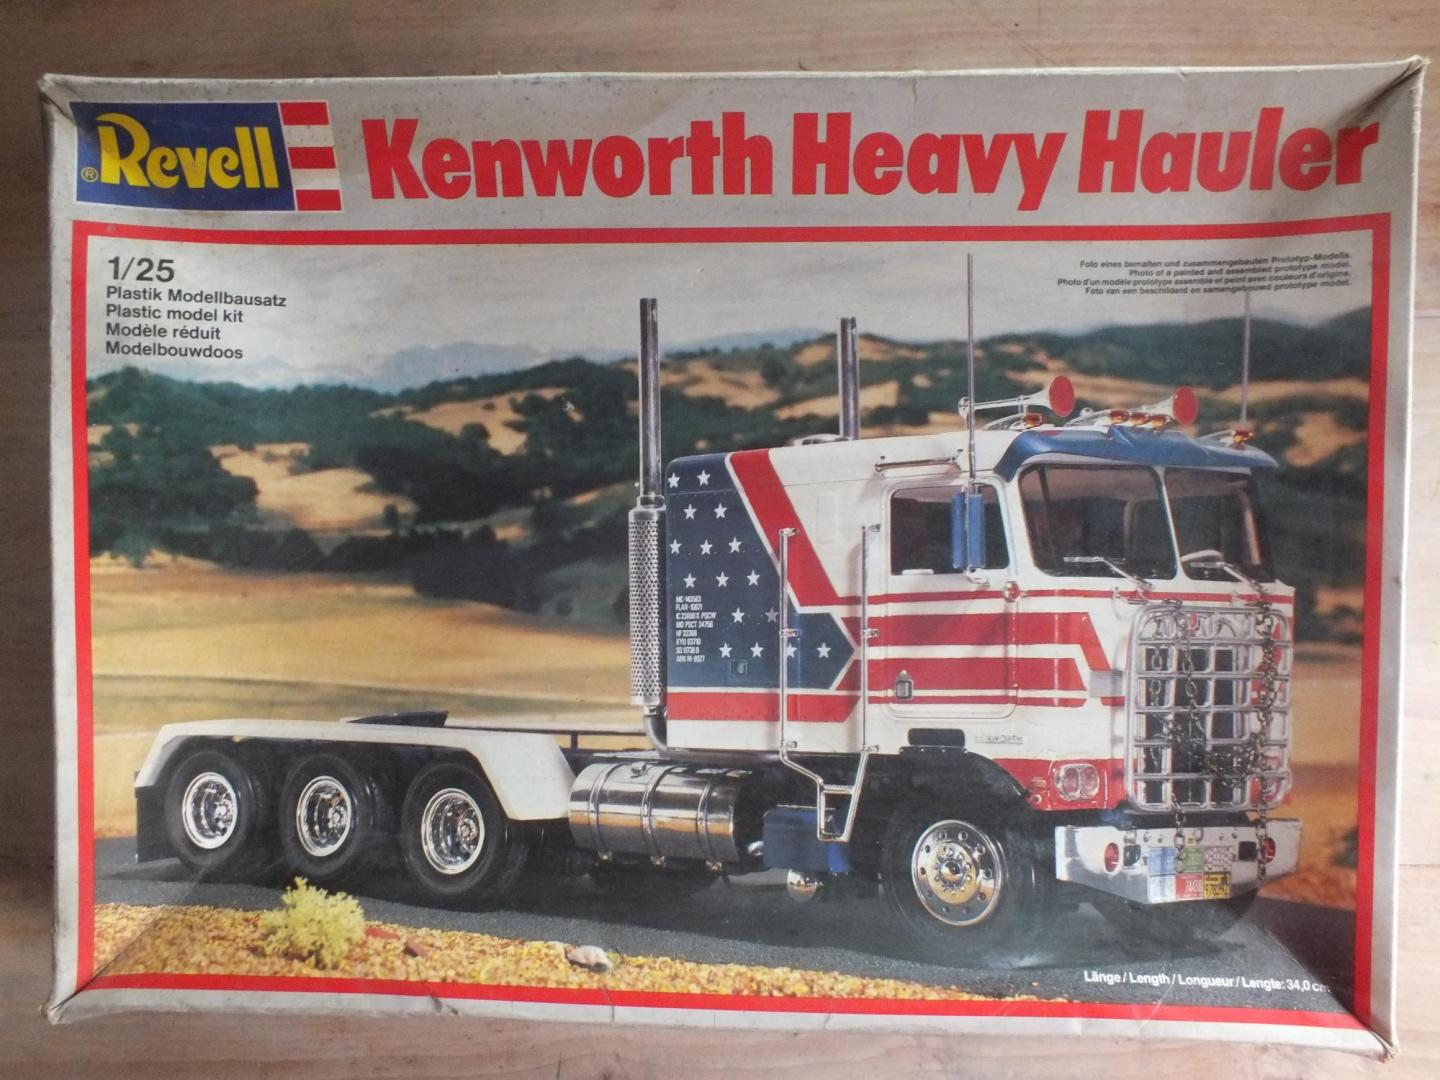 Kenworth Heavy Hauler.JPG